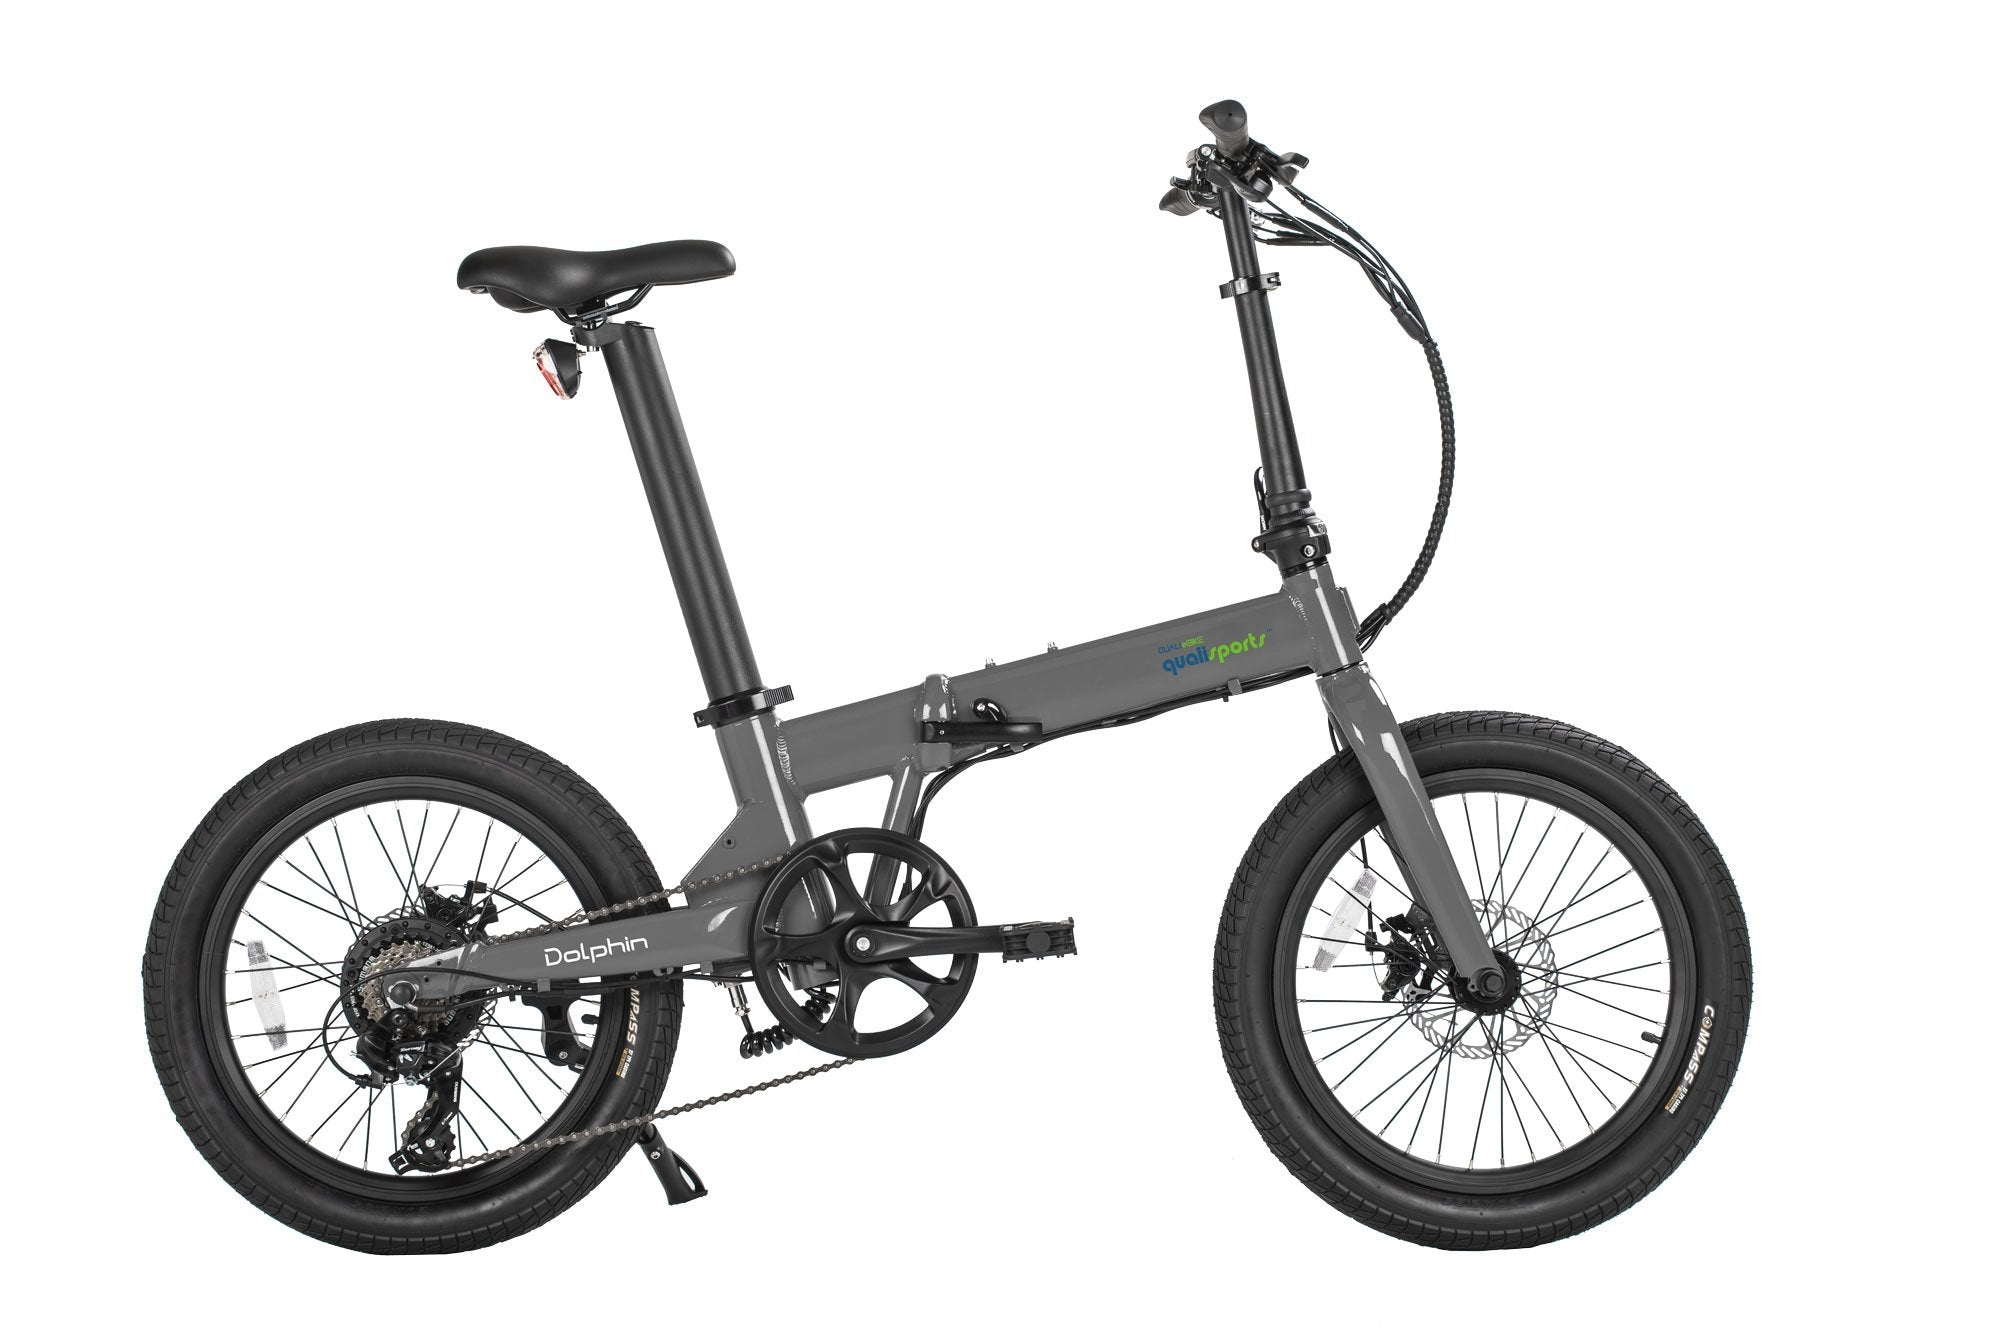 20inch-Silver-Wider-Tire-Folding-Electric-Bike-On-Sale-By-Qualisports-Dolphin